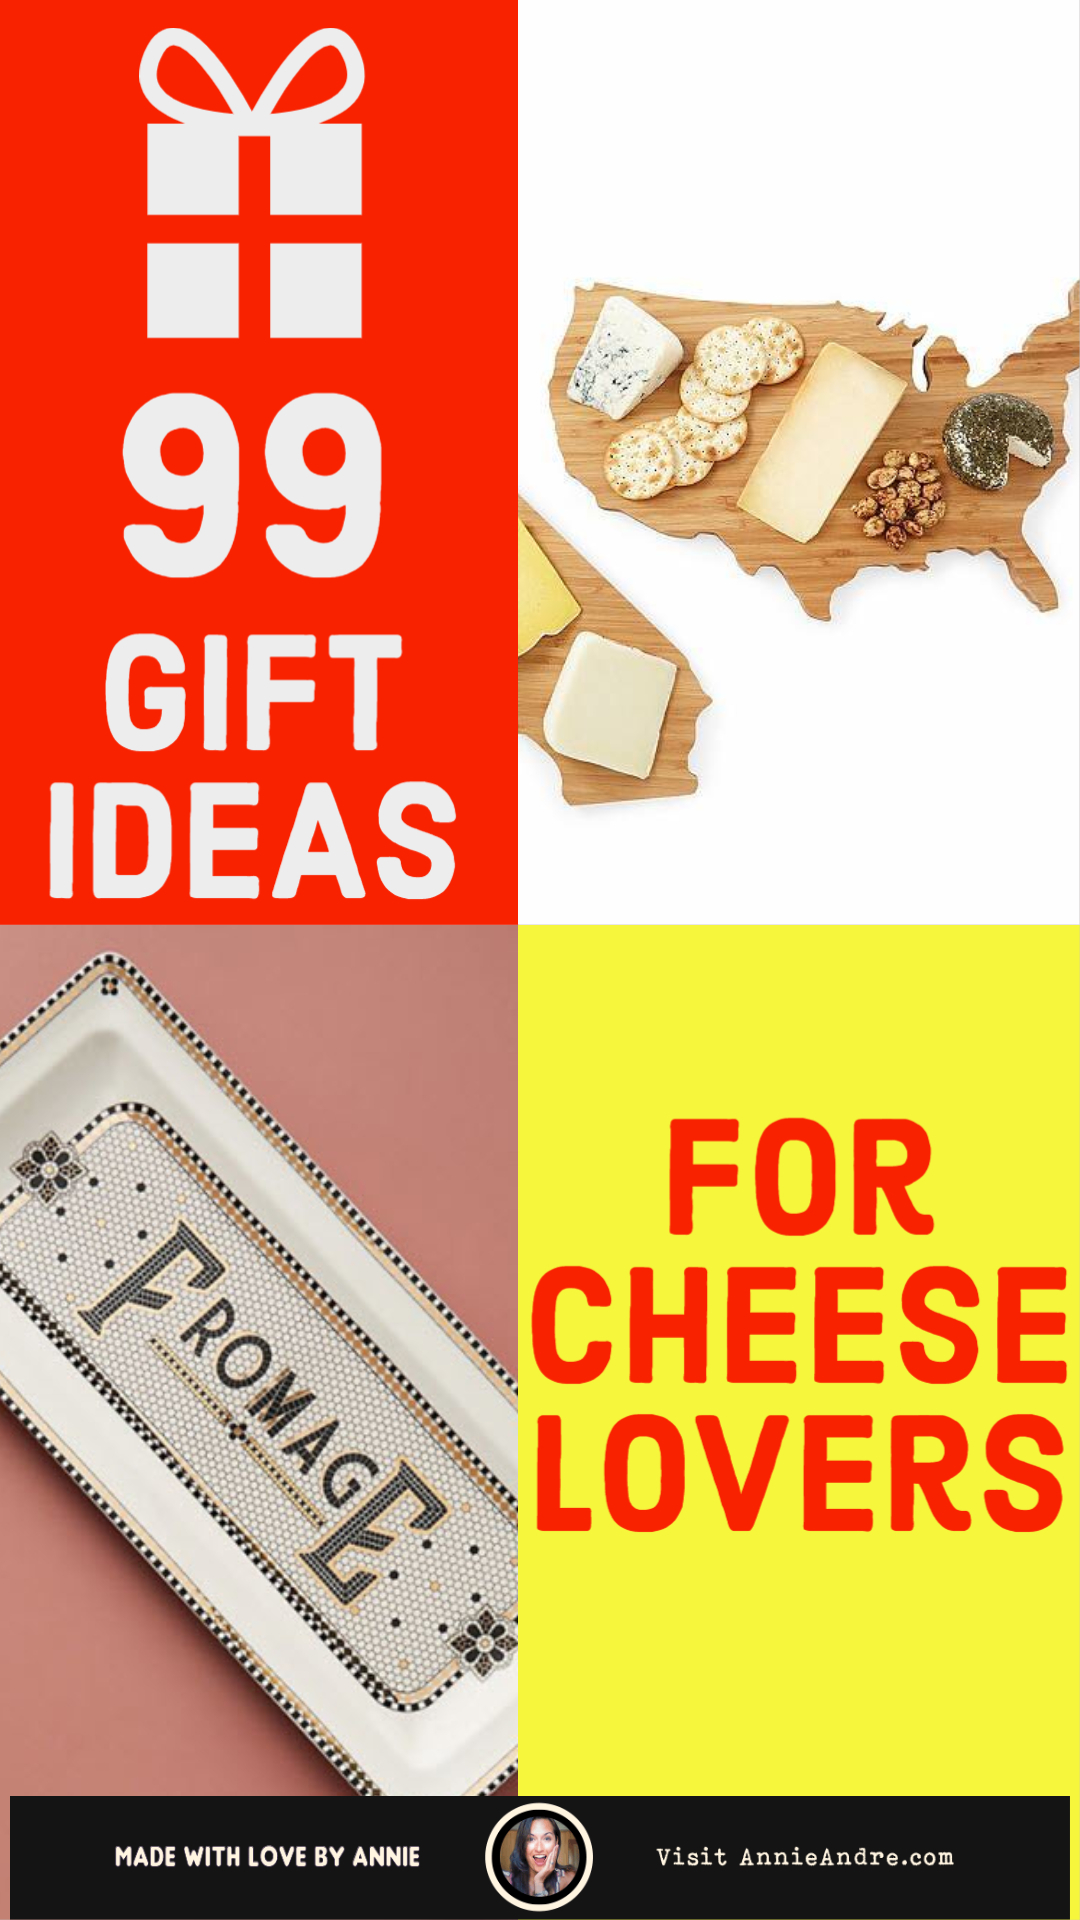 The Ultimate Gift Guide For Cheese Lovers based on their interests and personality